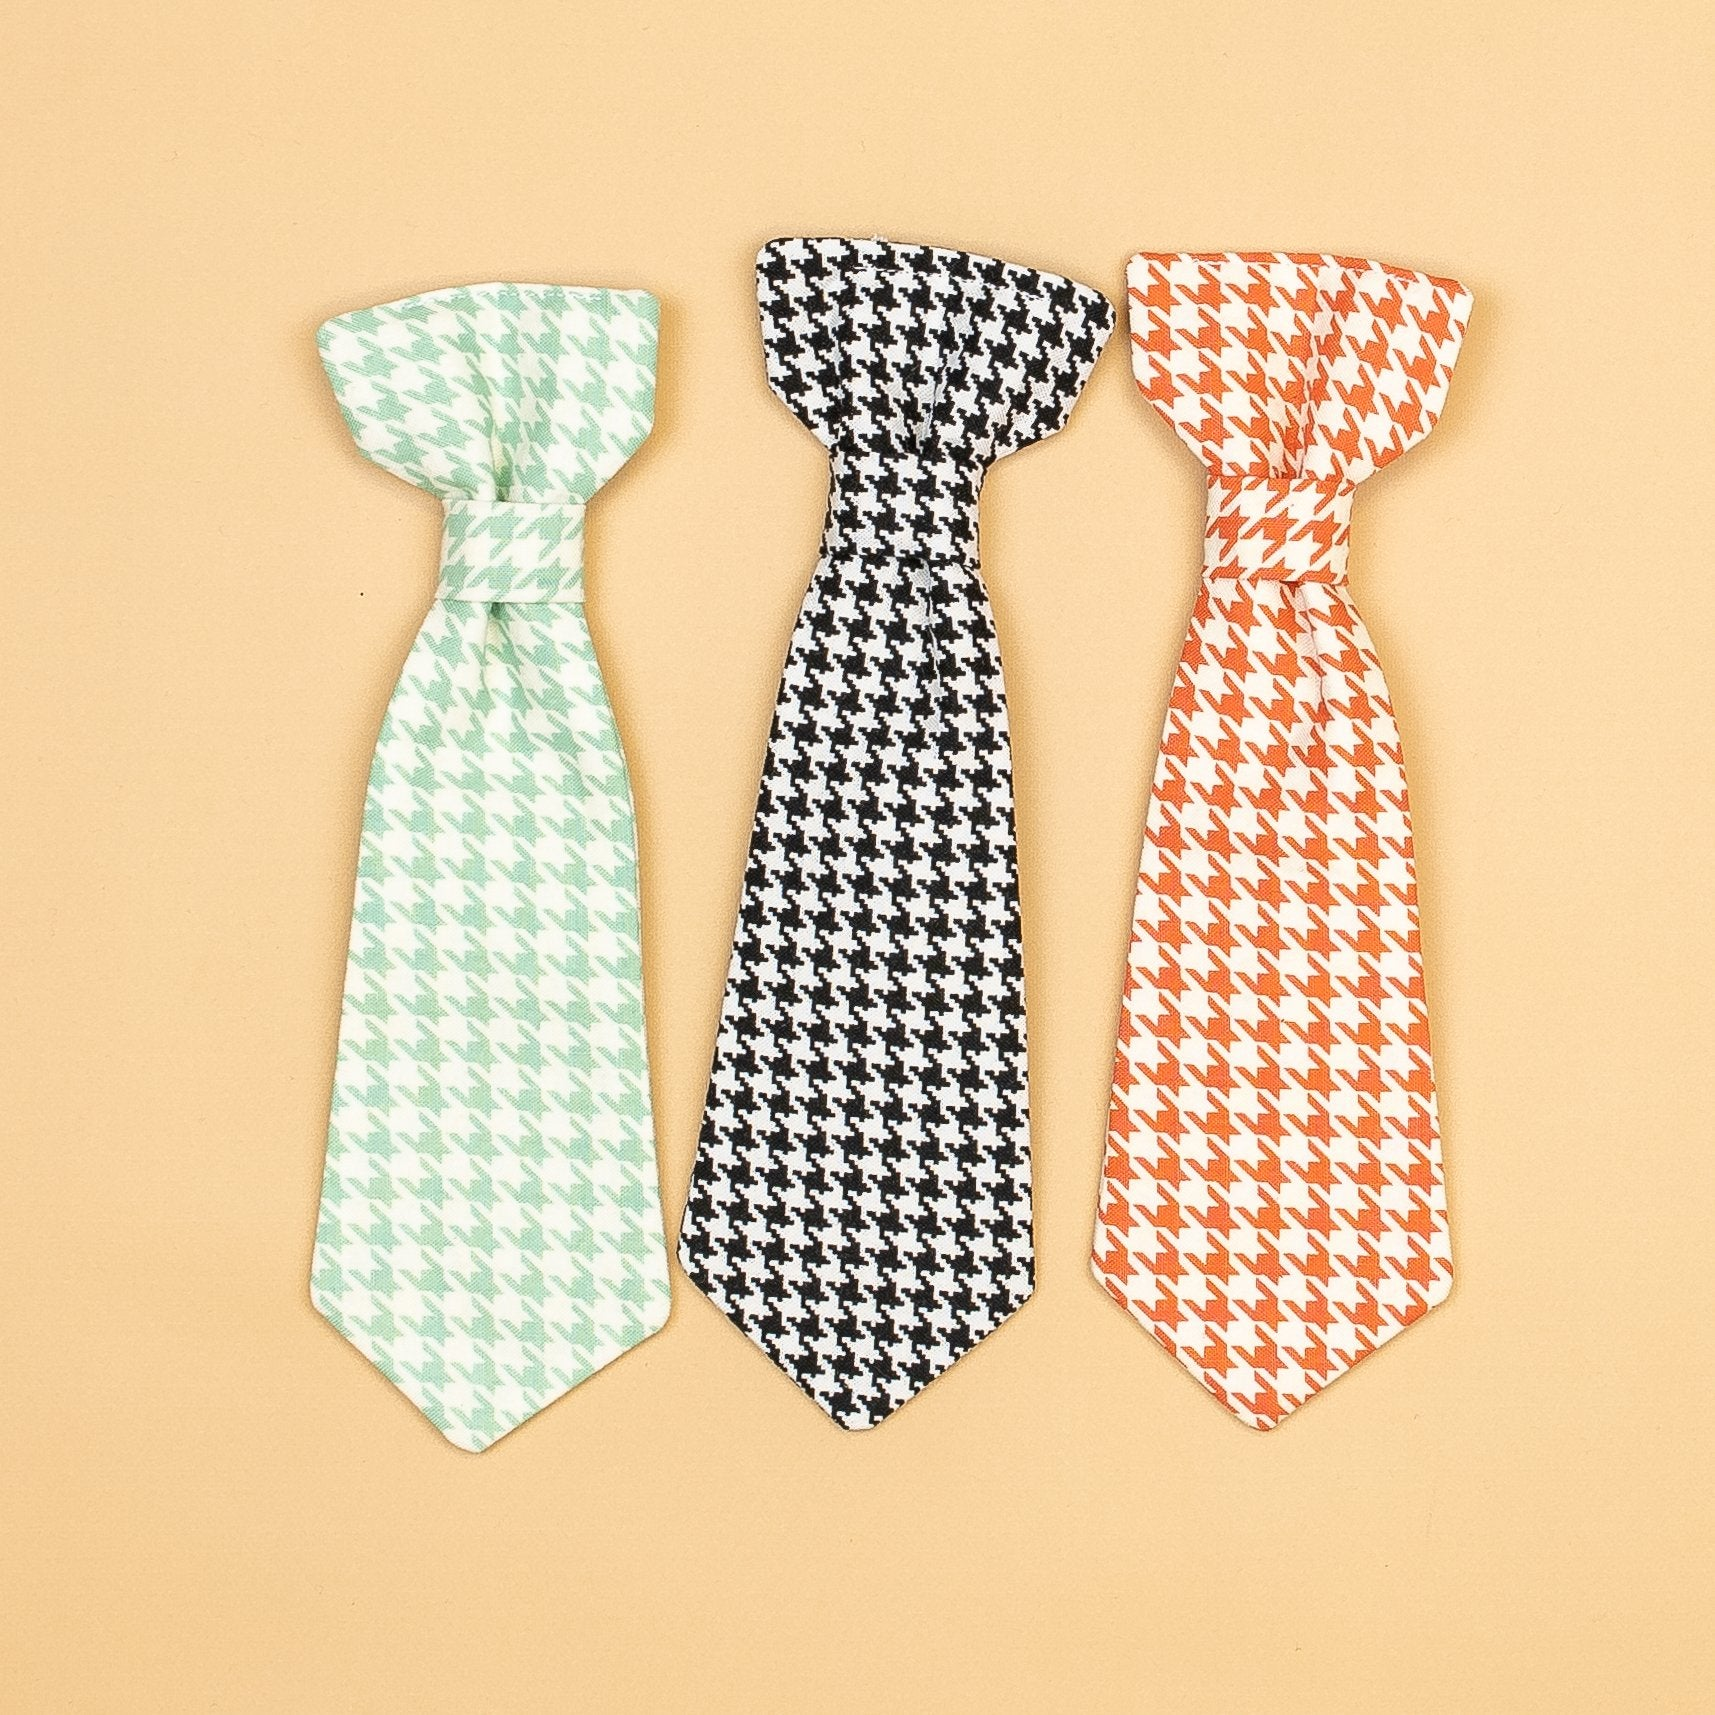 Cuddle Sleep Dream extras Houndstooth Snap-On Ties